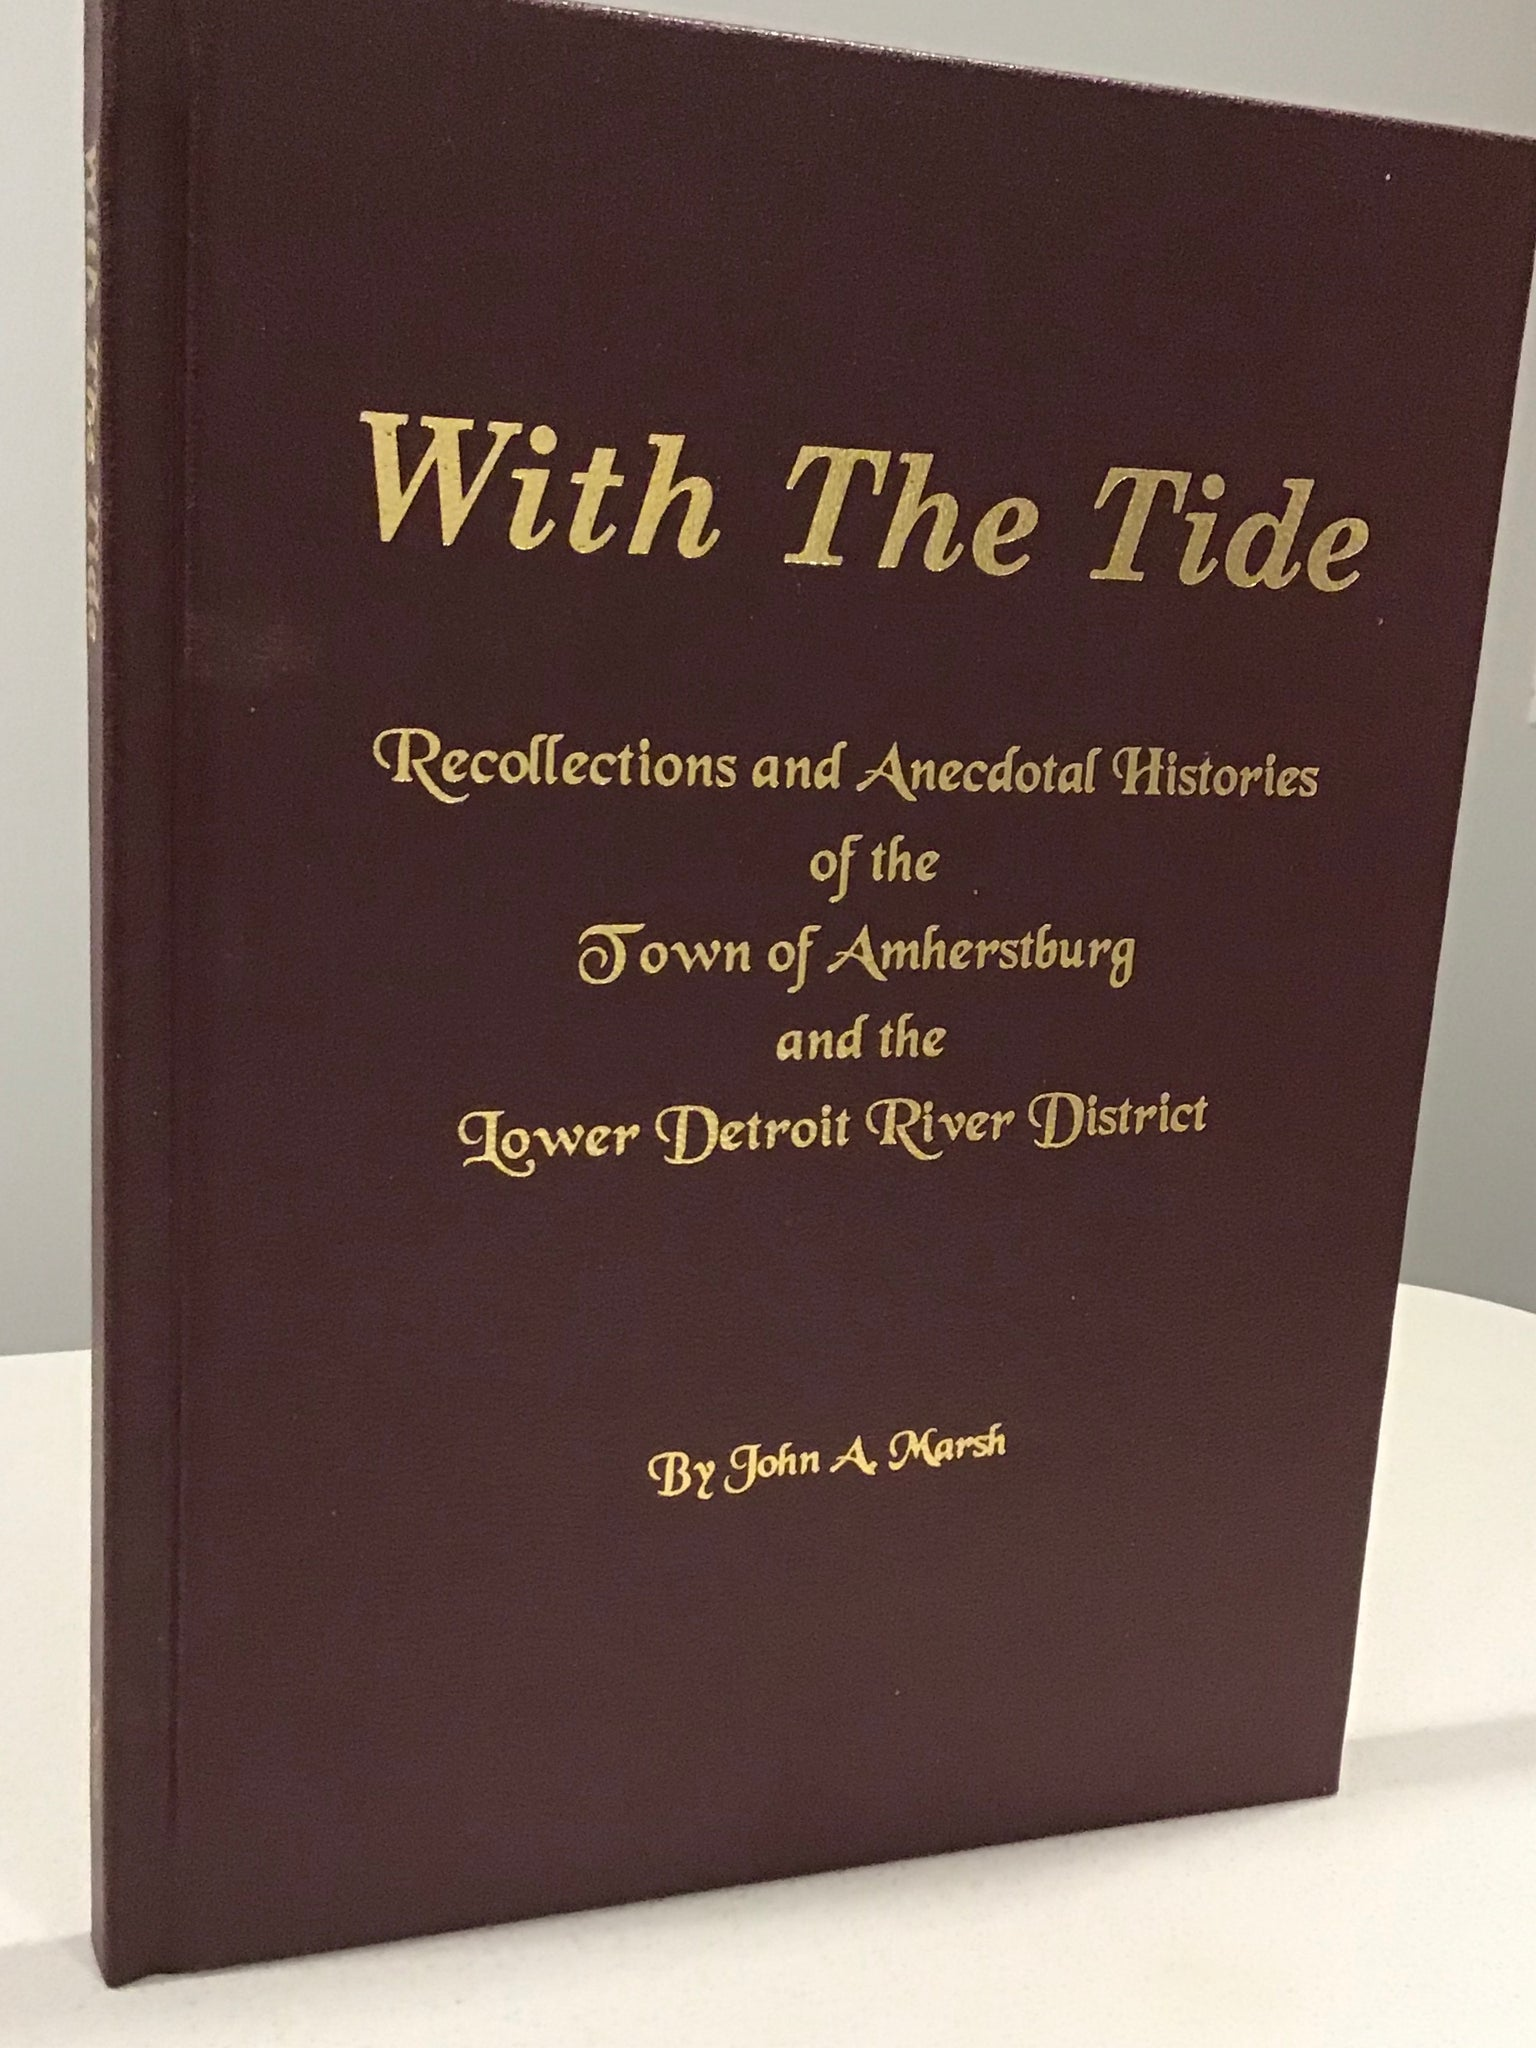 With the Tide; Recollections and the Anecdotal Histories of the Town of Amherstburg and the Lower Detroit River District